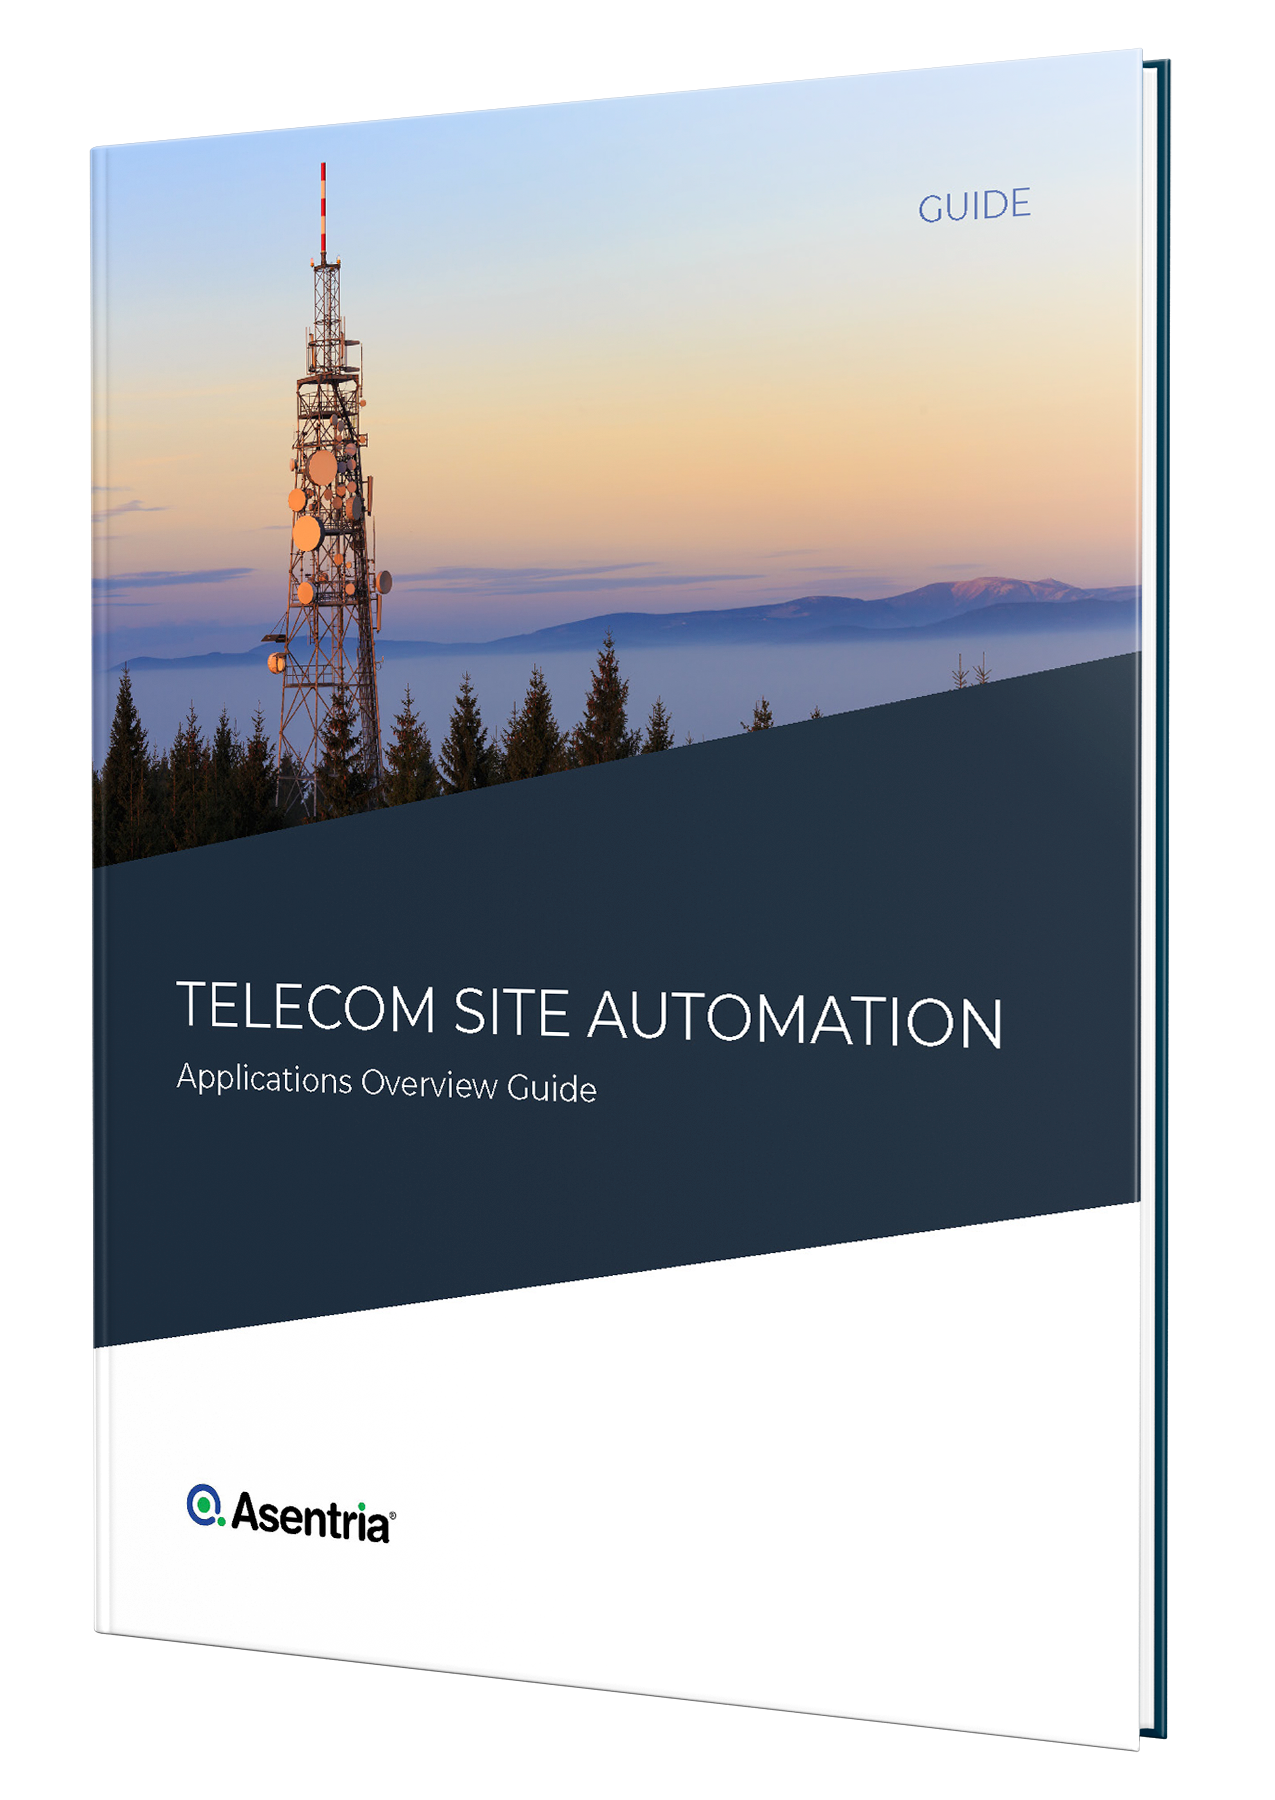 telecom site automation applications overview guide cover mockup